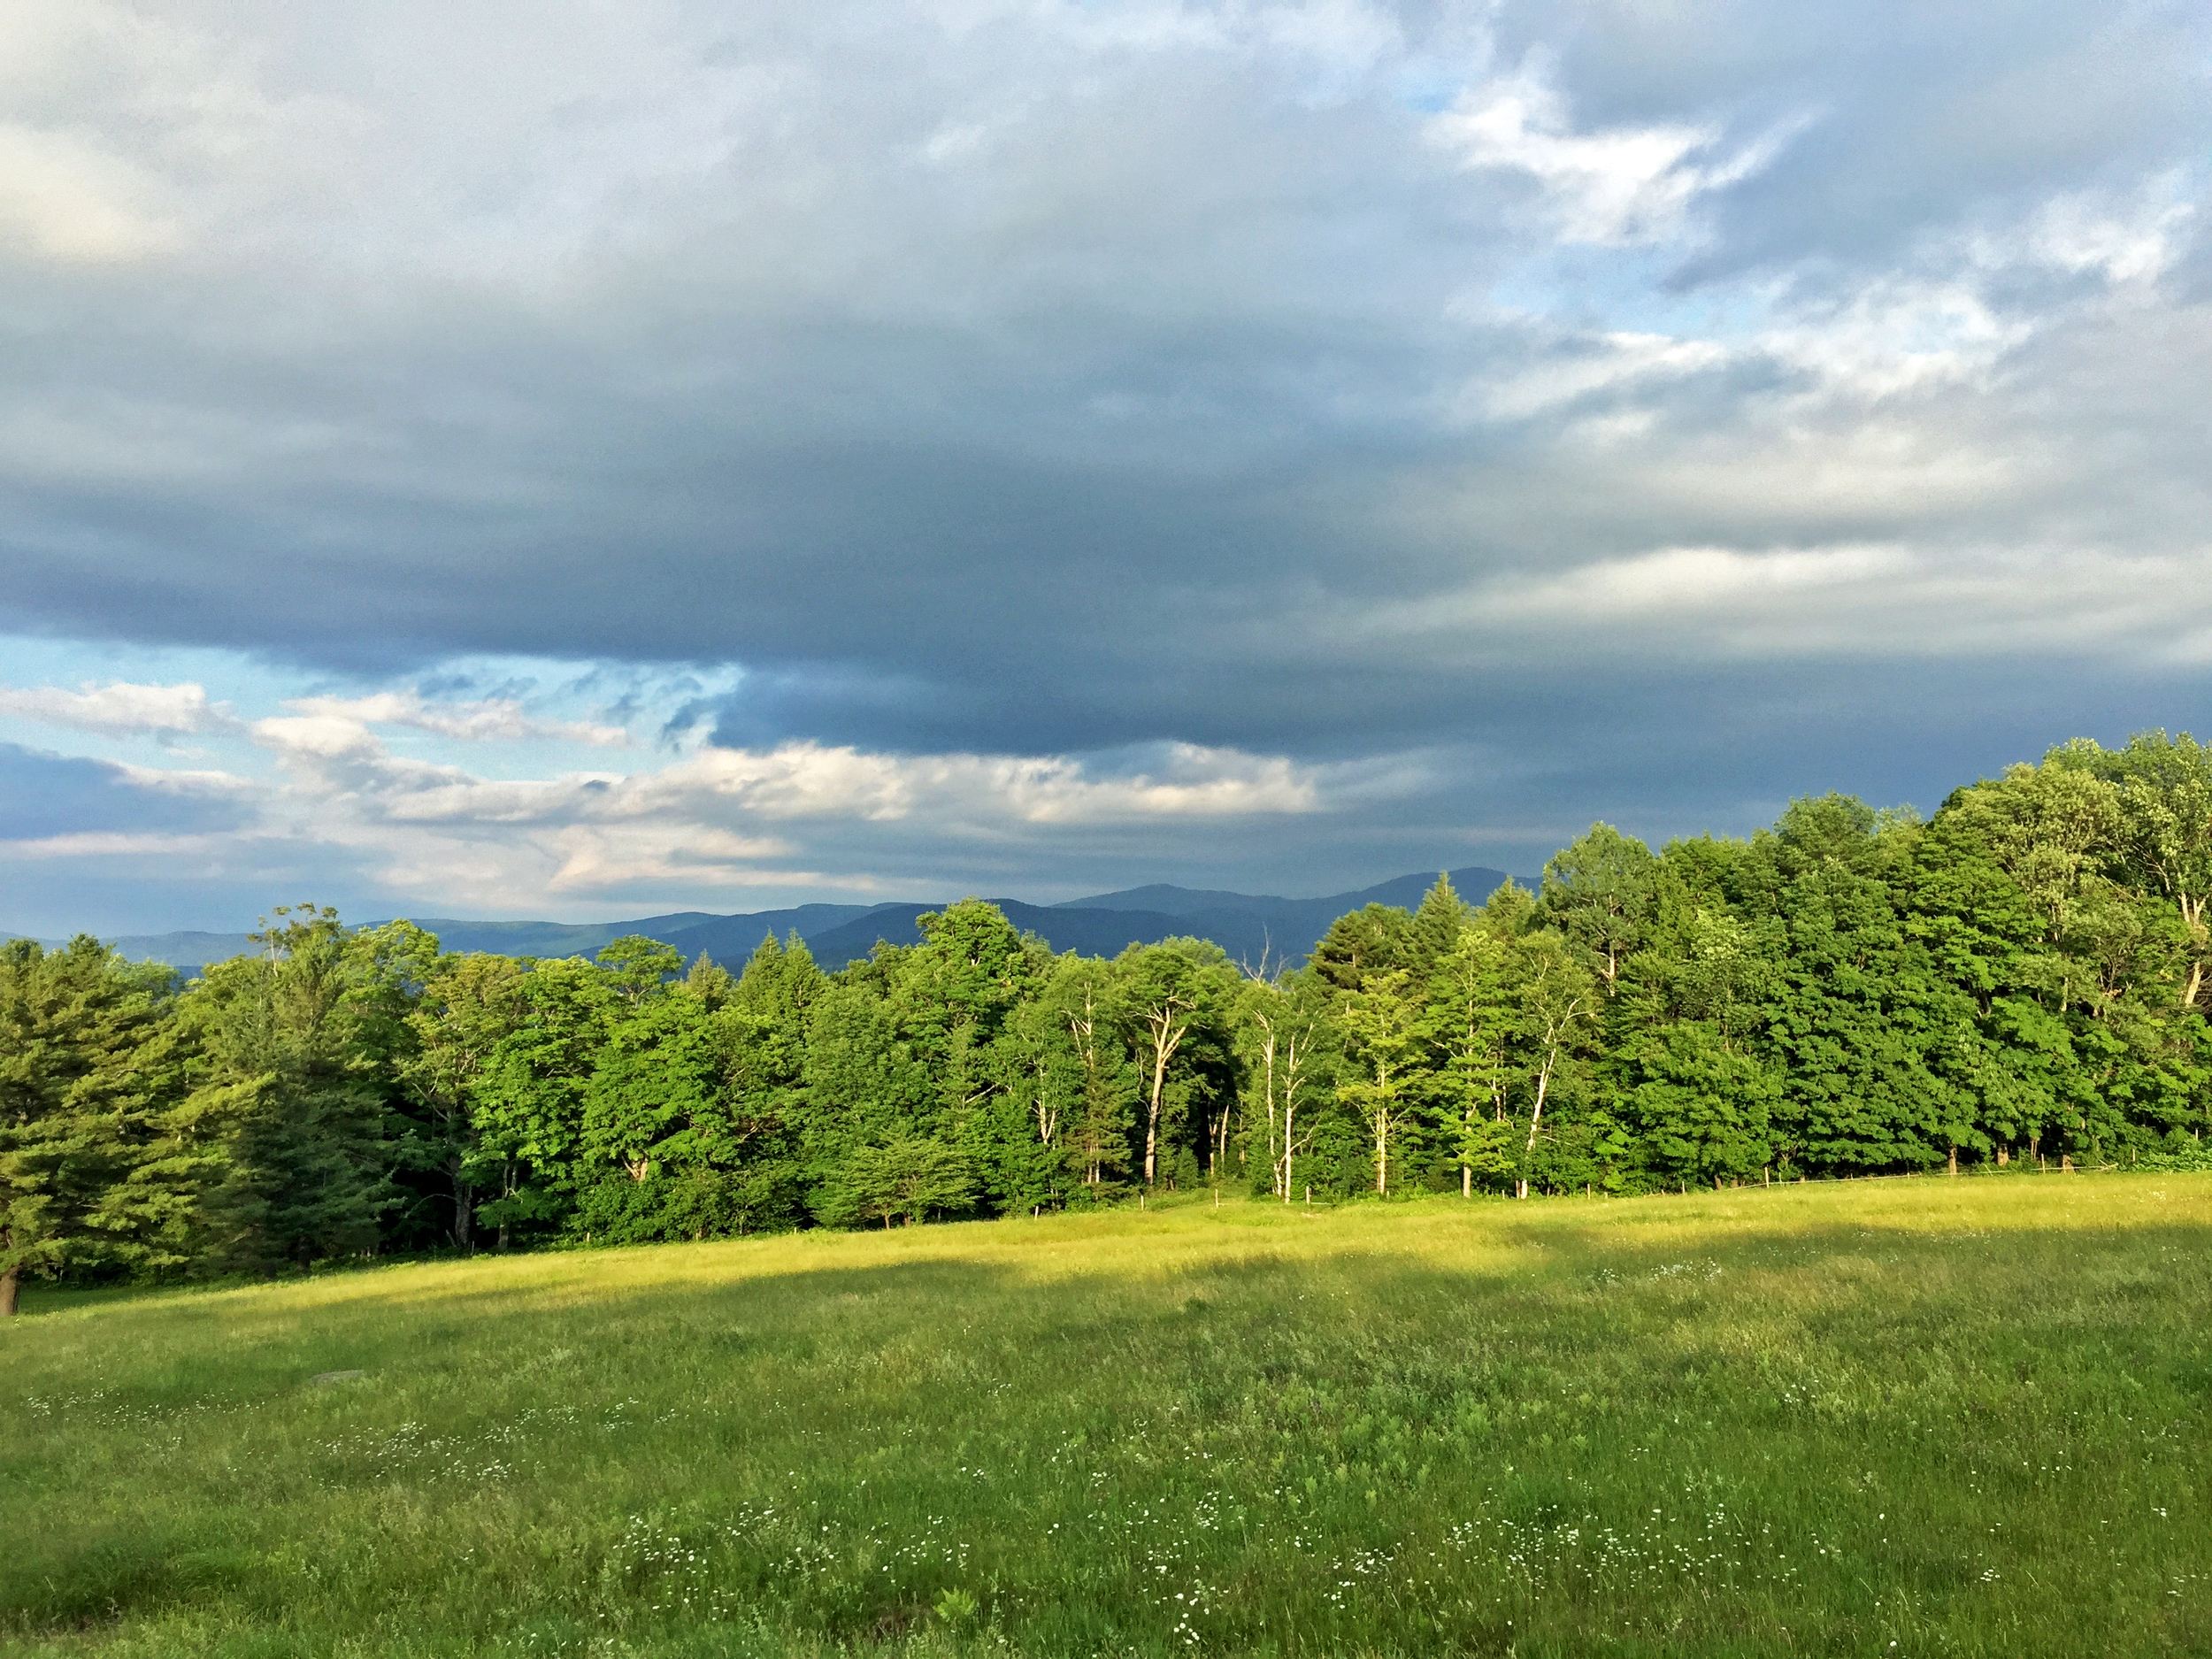 The view to the east from Trapp Hill Road at Trapp Family Lodge